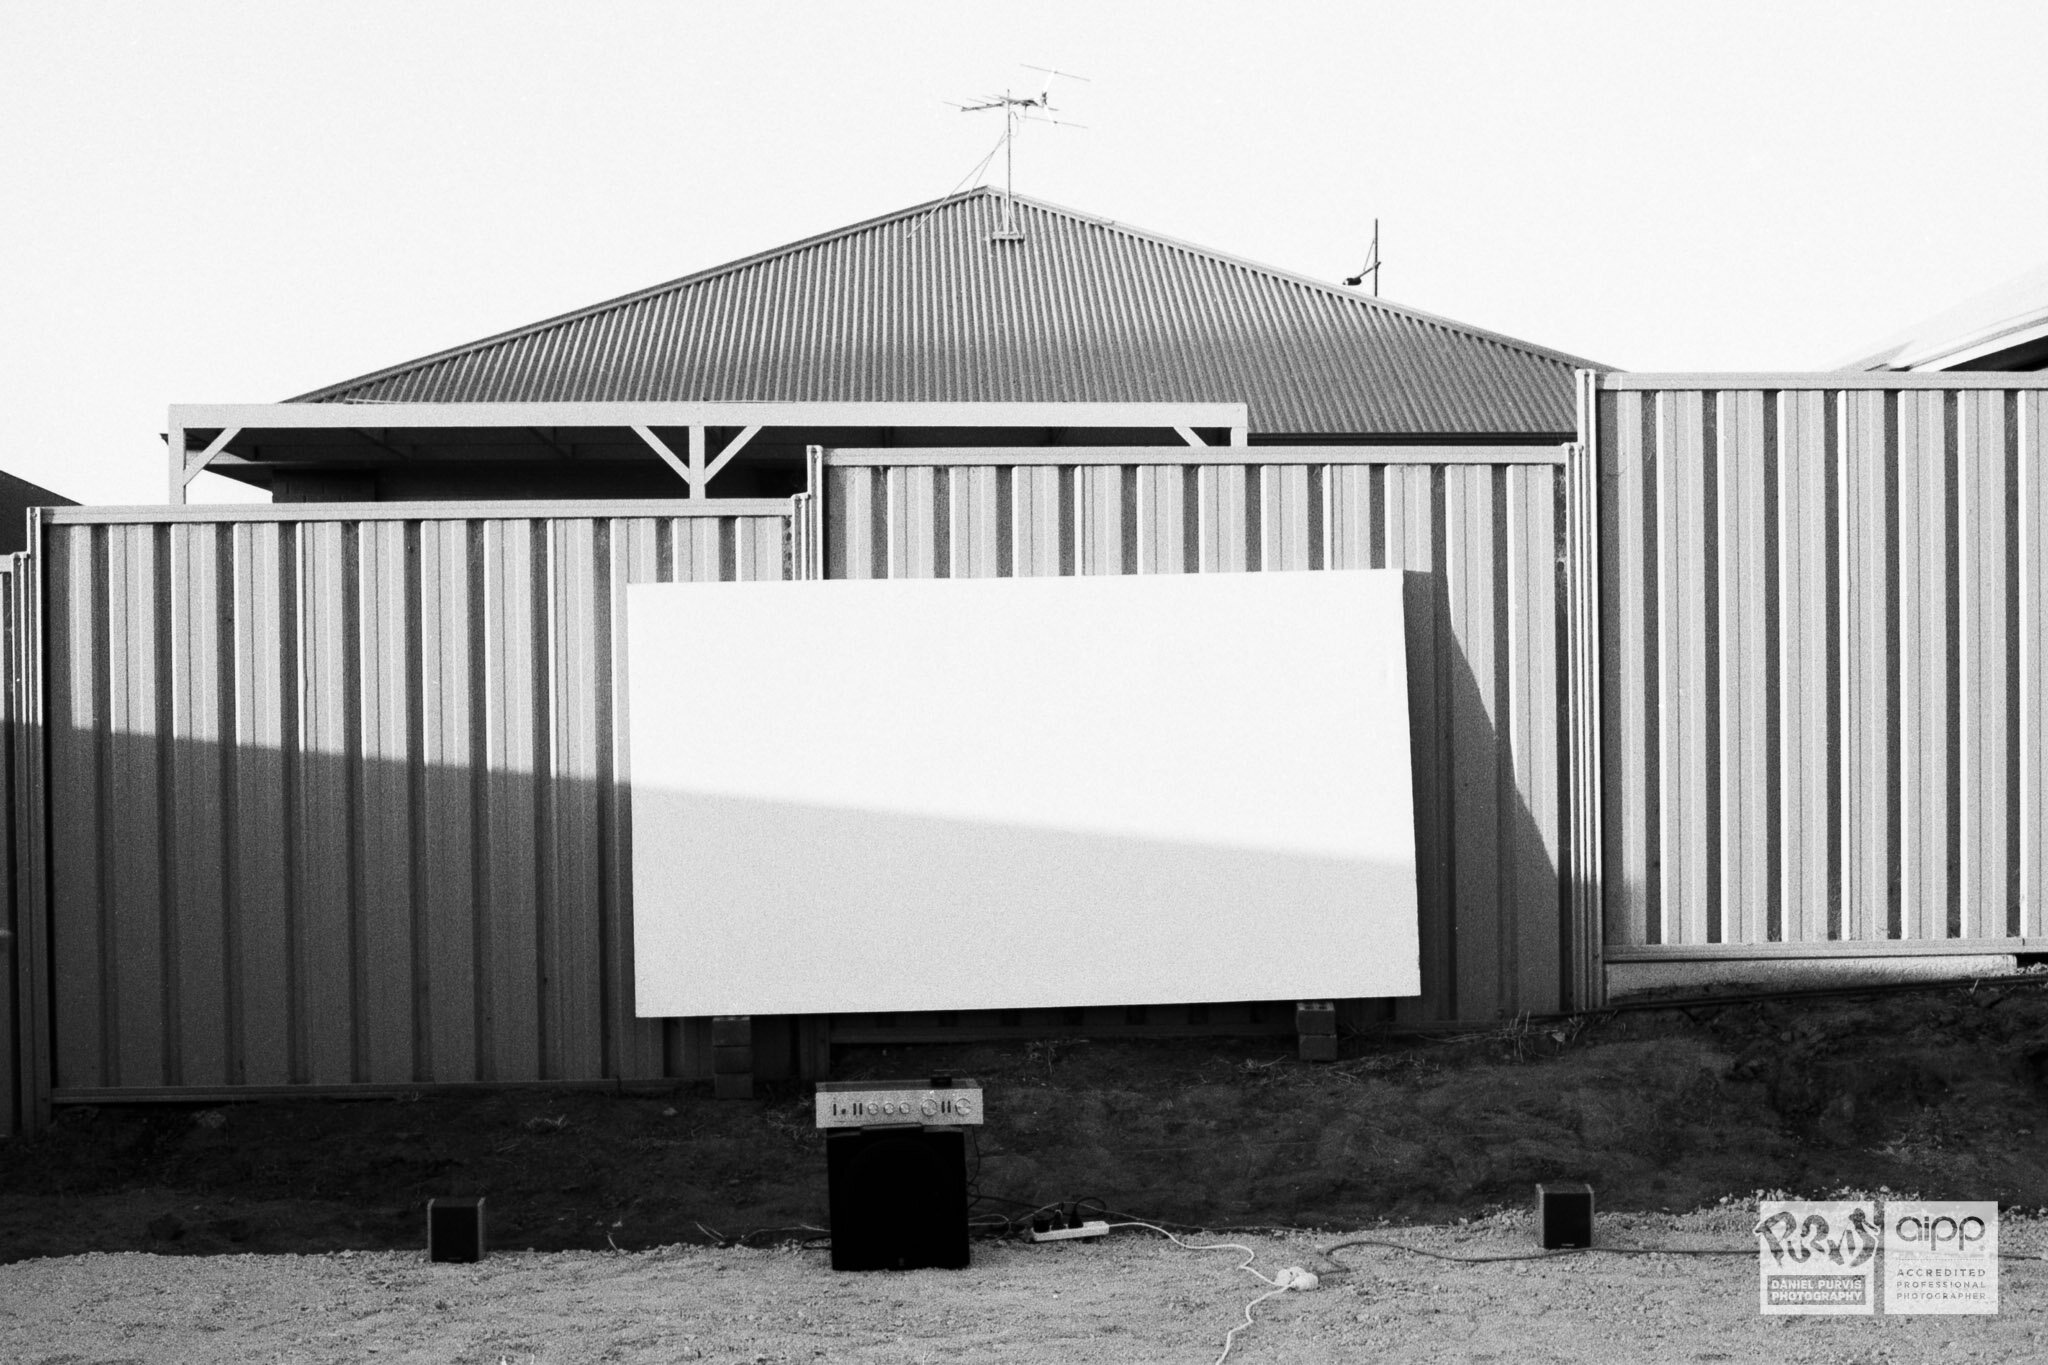 Toddlight Cinema screen setup and waiting for sunset and a terrible film, in this case The Howling II (1985).